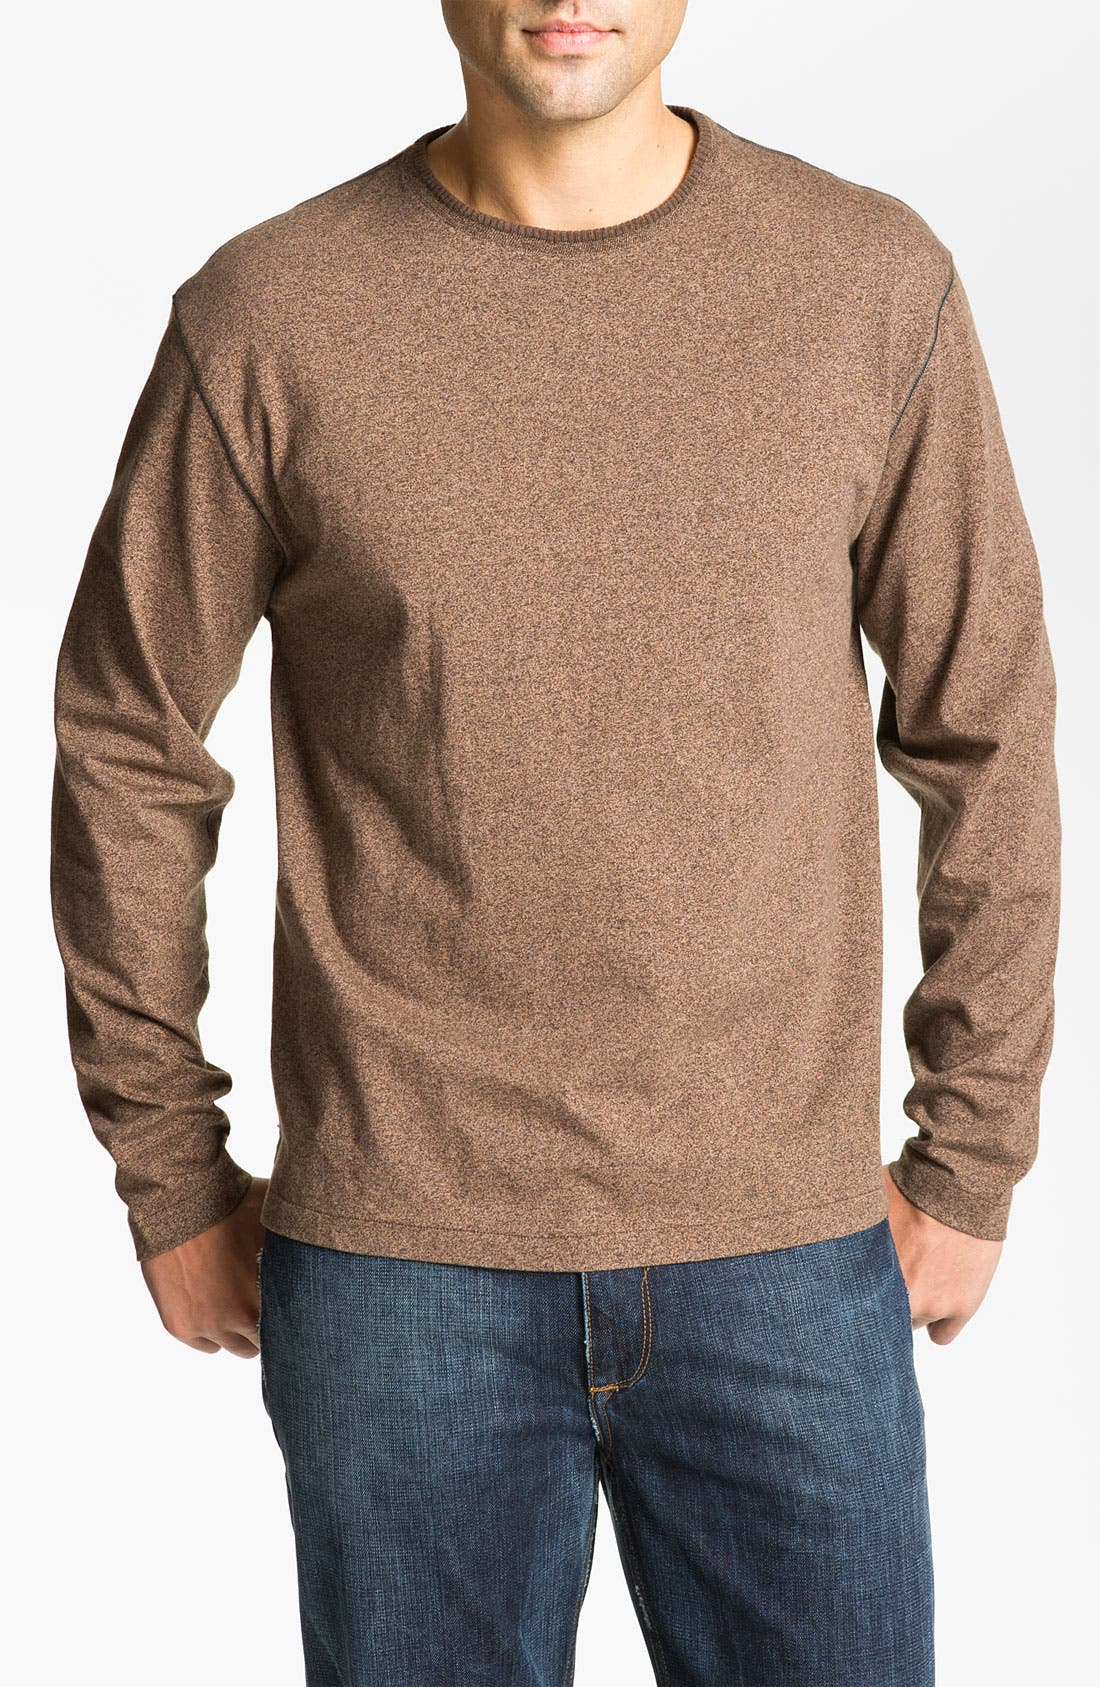 Main Image - Robert Graham 'Crown' Long Sleeve T-Shirt